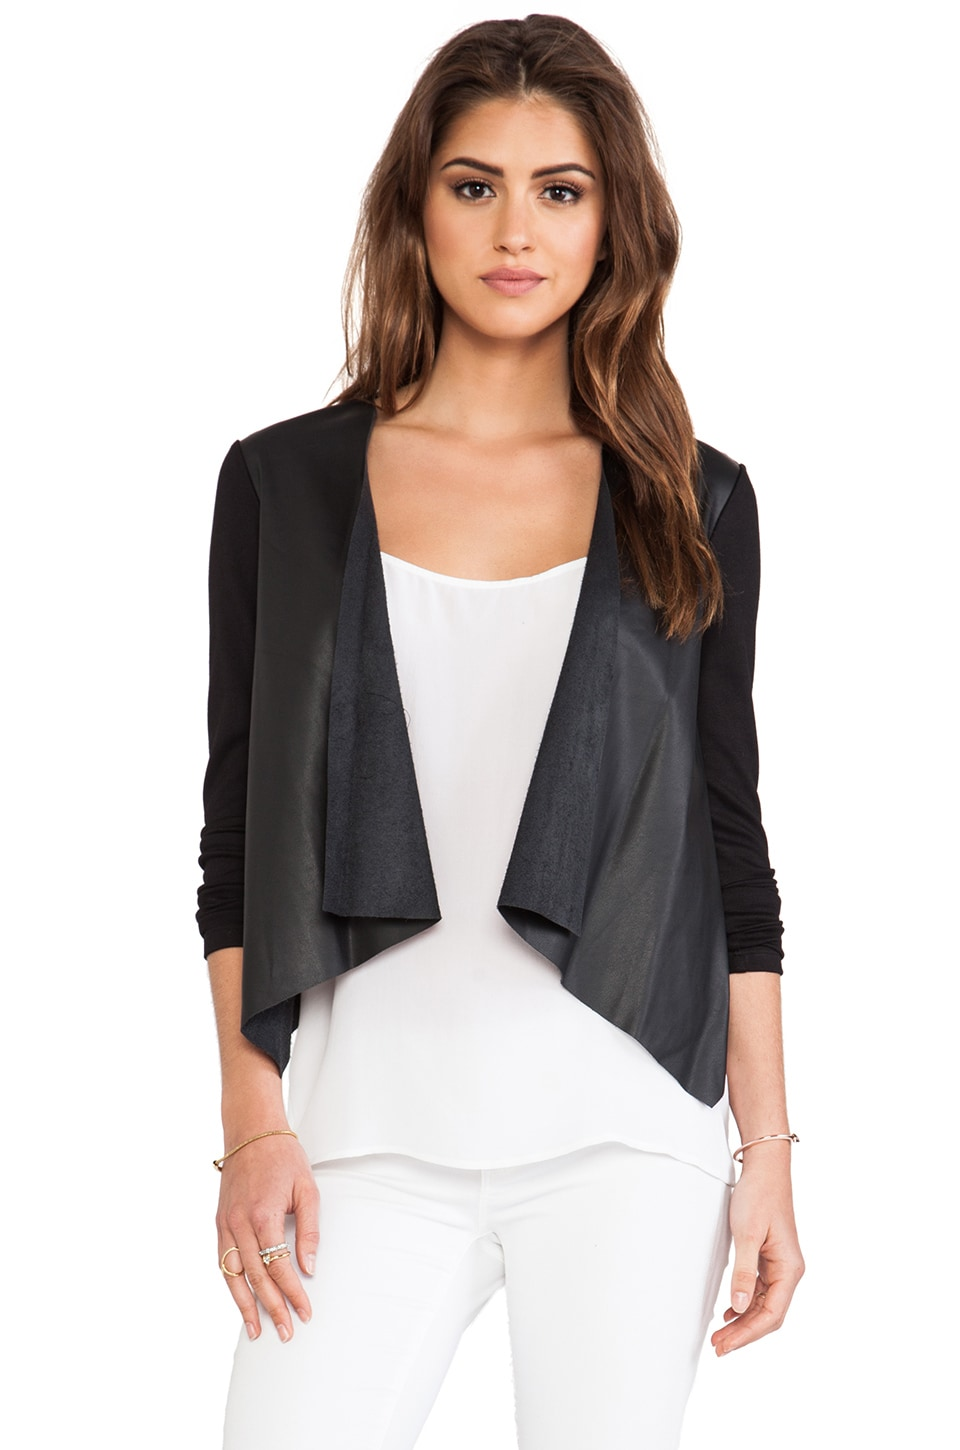 Velvet by Graham & Spencer Purity Ponti w/ Faux Leather Jacket in Black/Black